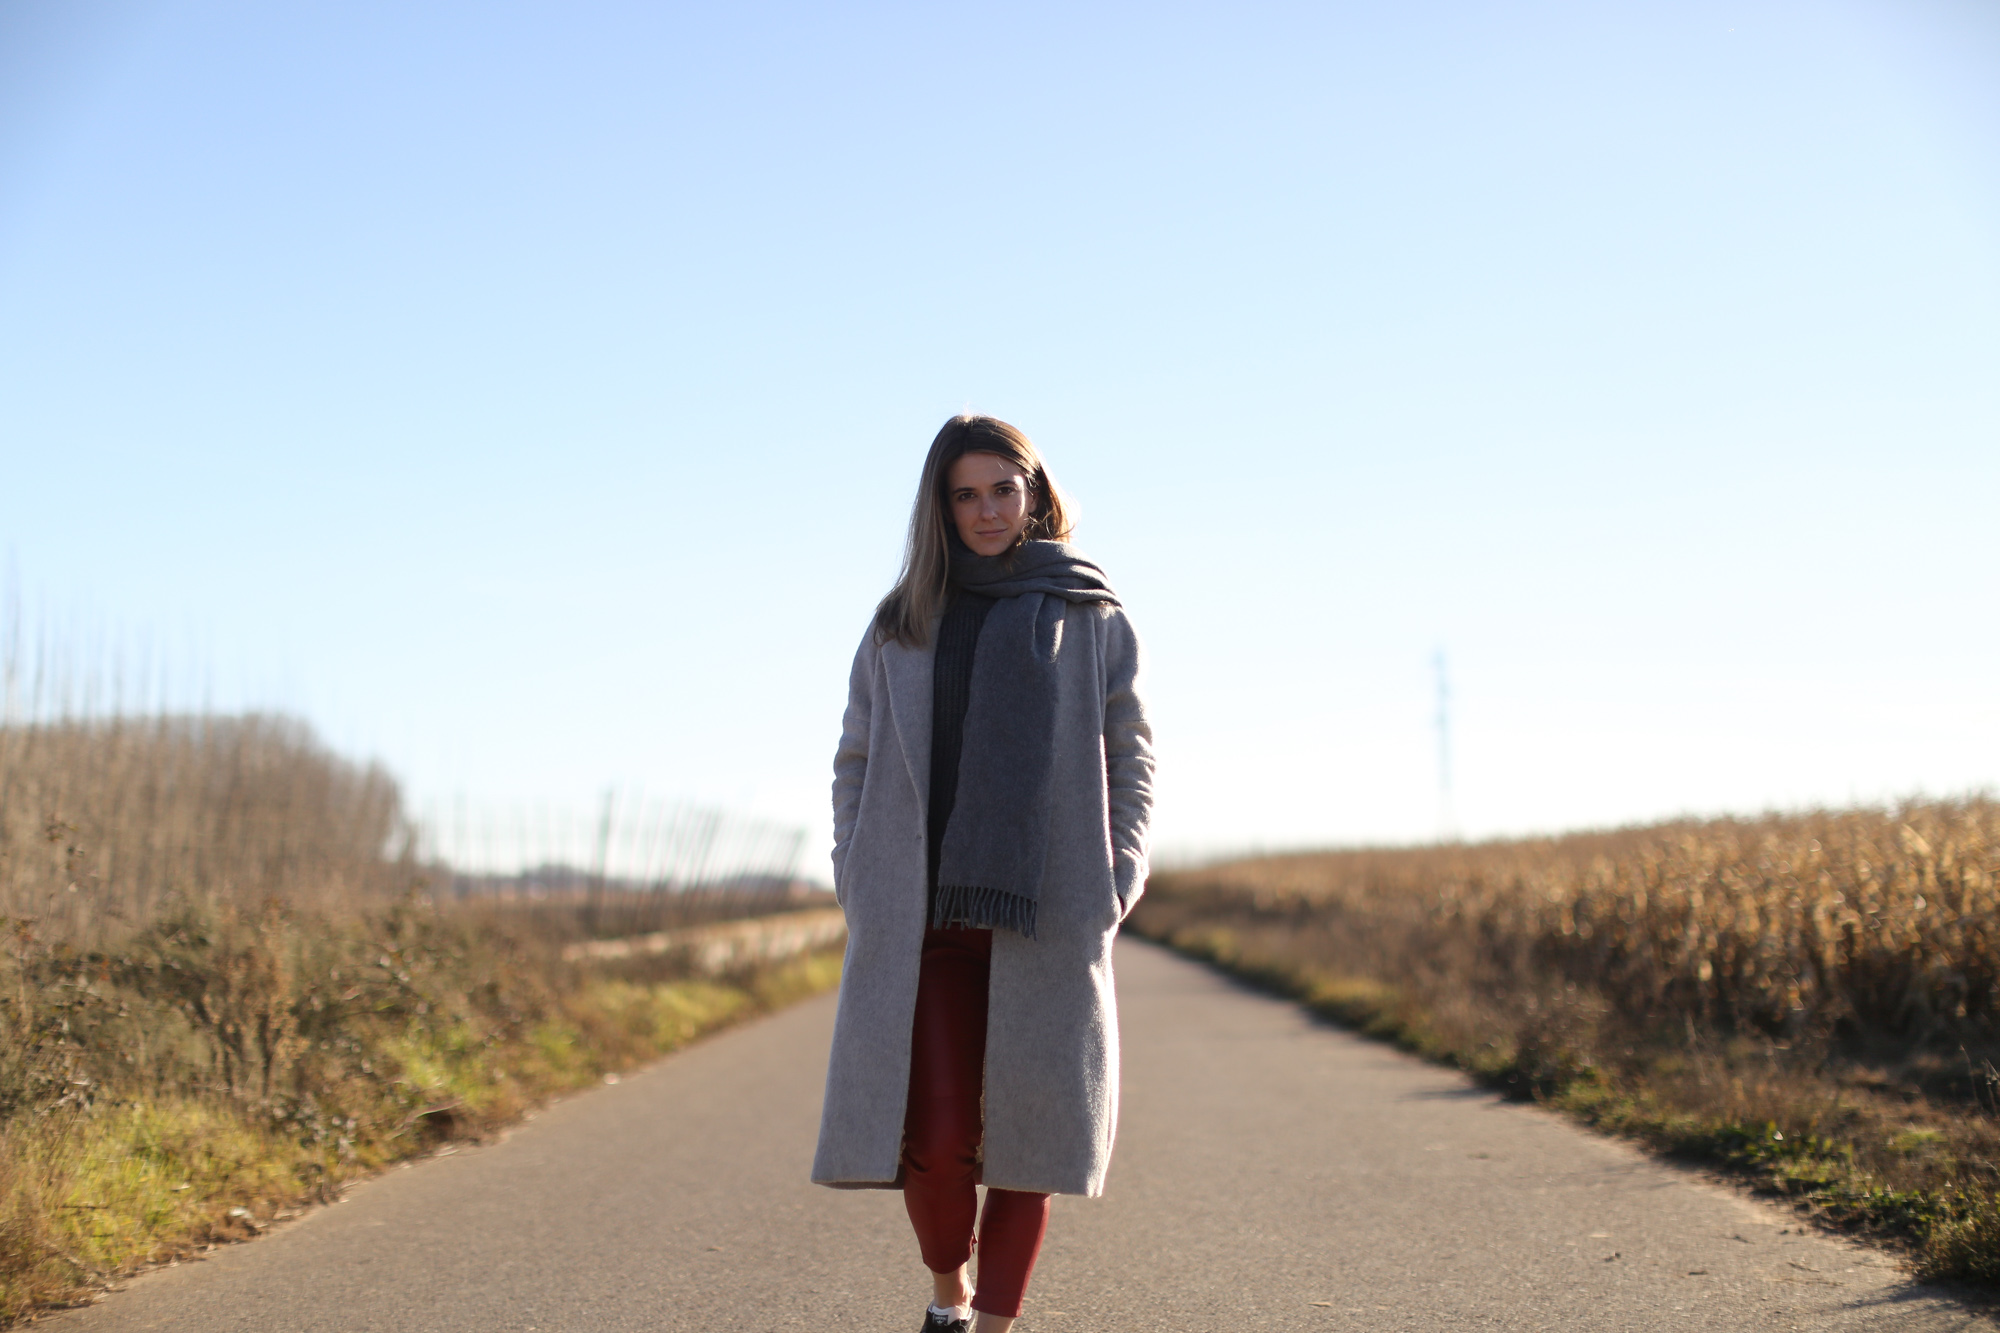 Clochet_streetstyle_mango_long_grey_coat_rd_leather_trousers_adidas_gazelle-1-2